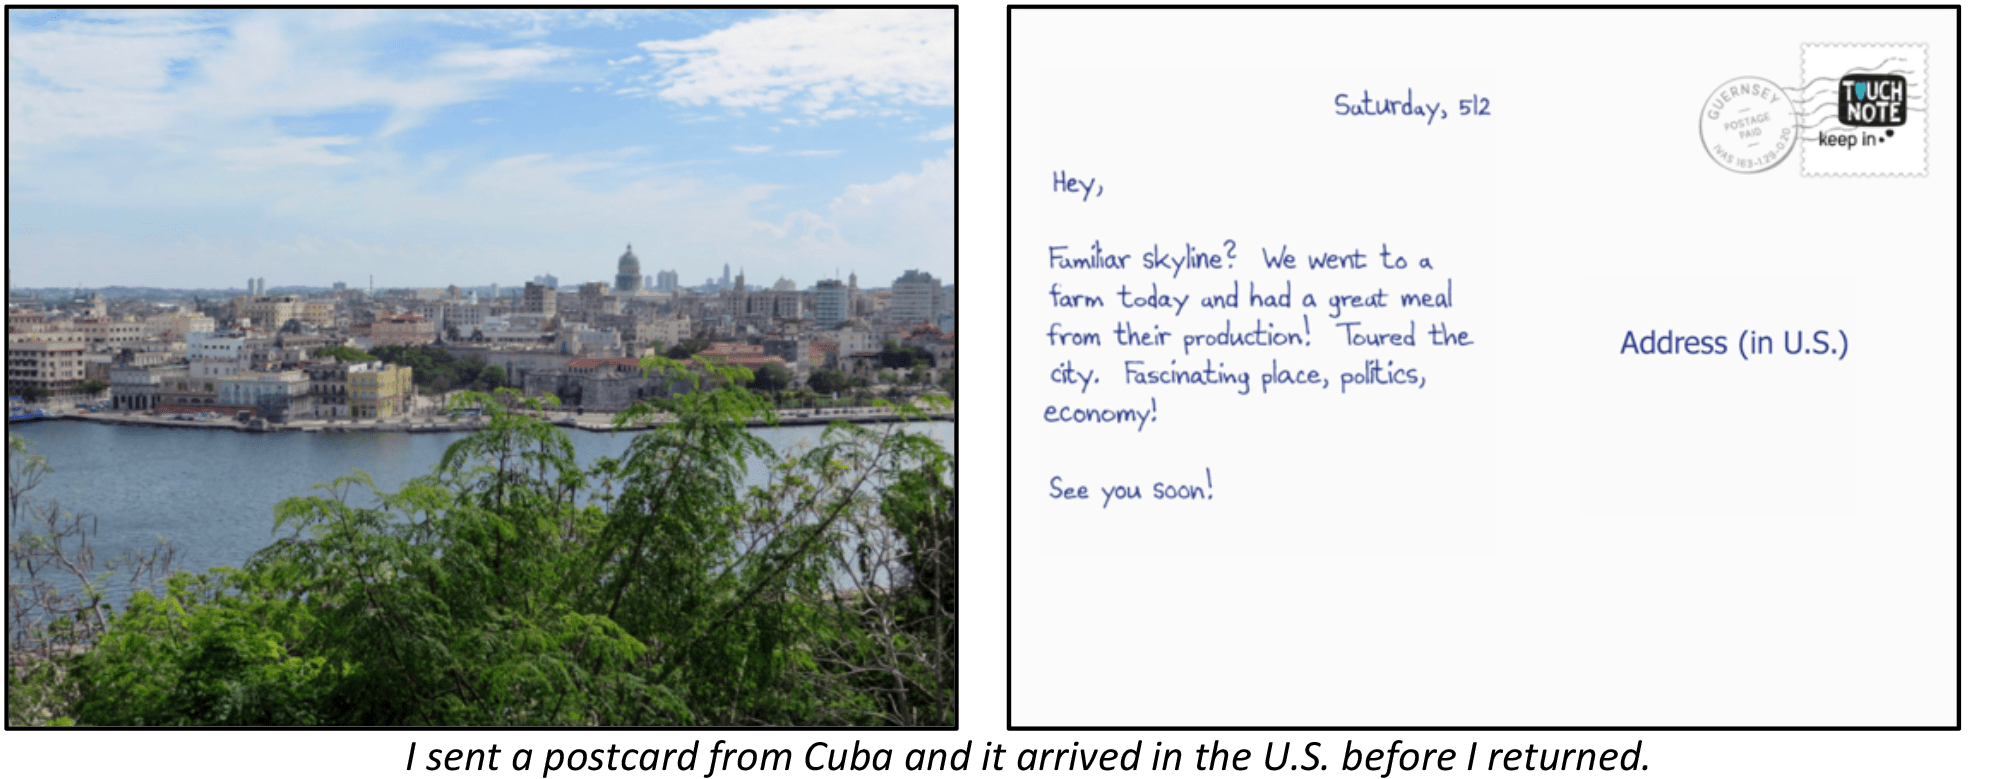 The image shows a photo of Havana's skyline for the front of the postcard and a picture of a note and address space for the back of the postcard.